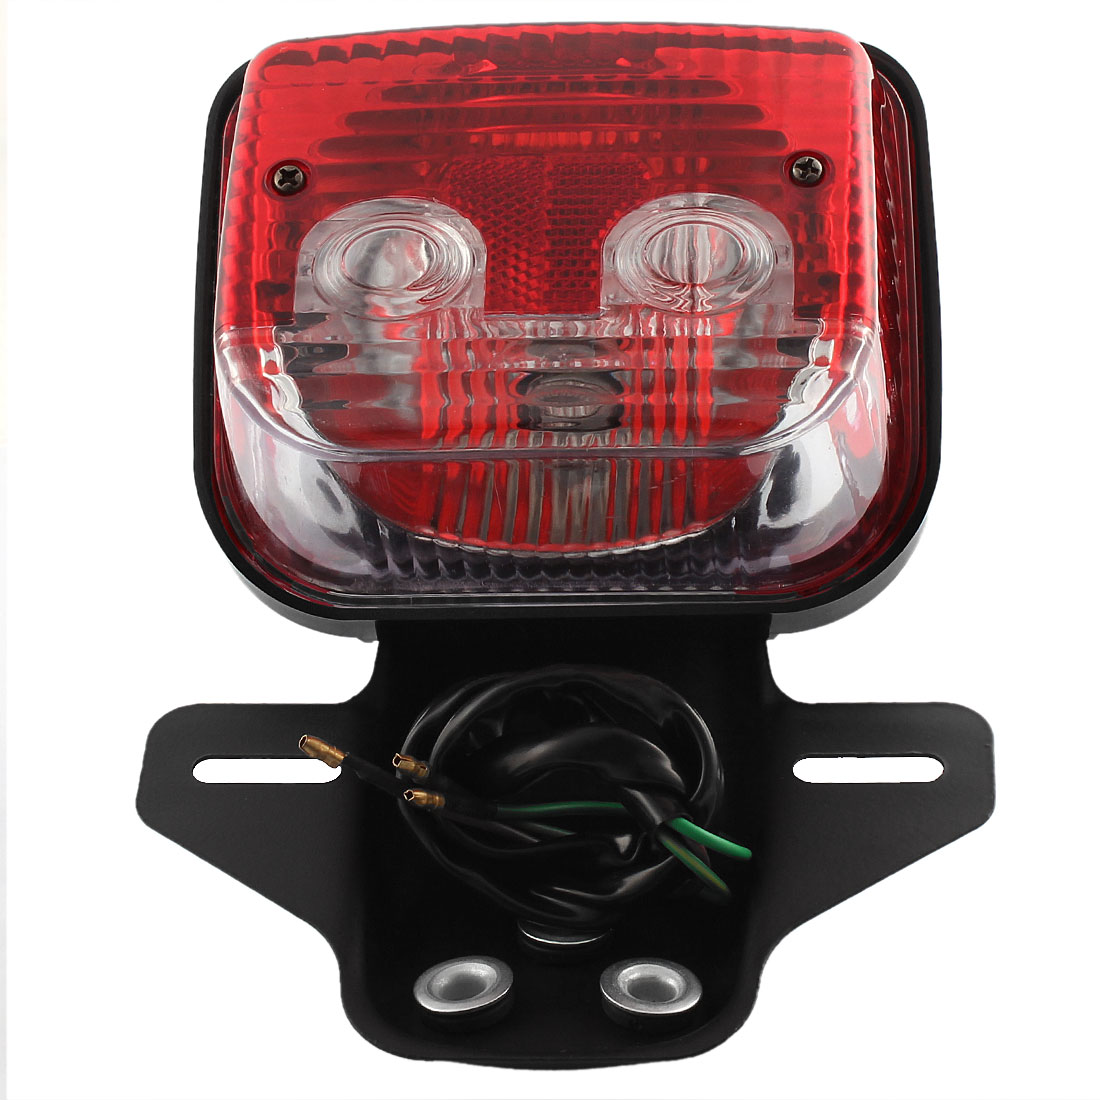 Red Yellow LED Tail Turn Signal Brake License Plate Light for Motorcycle CG